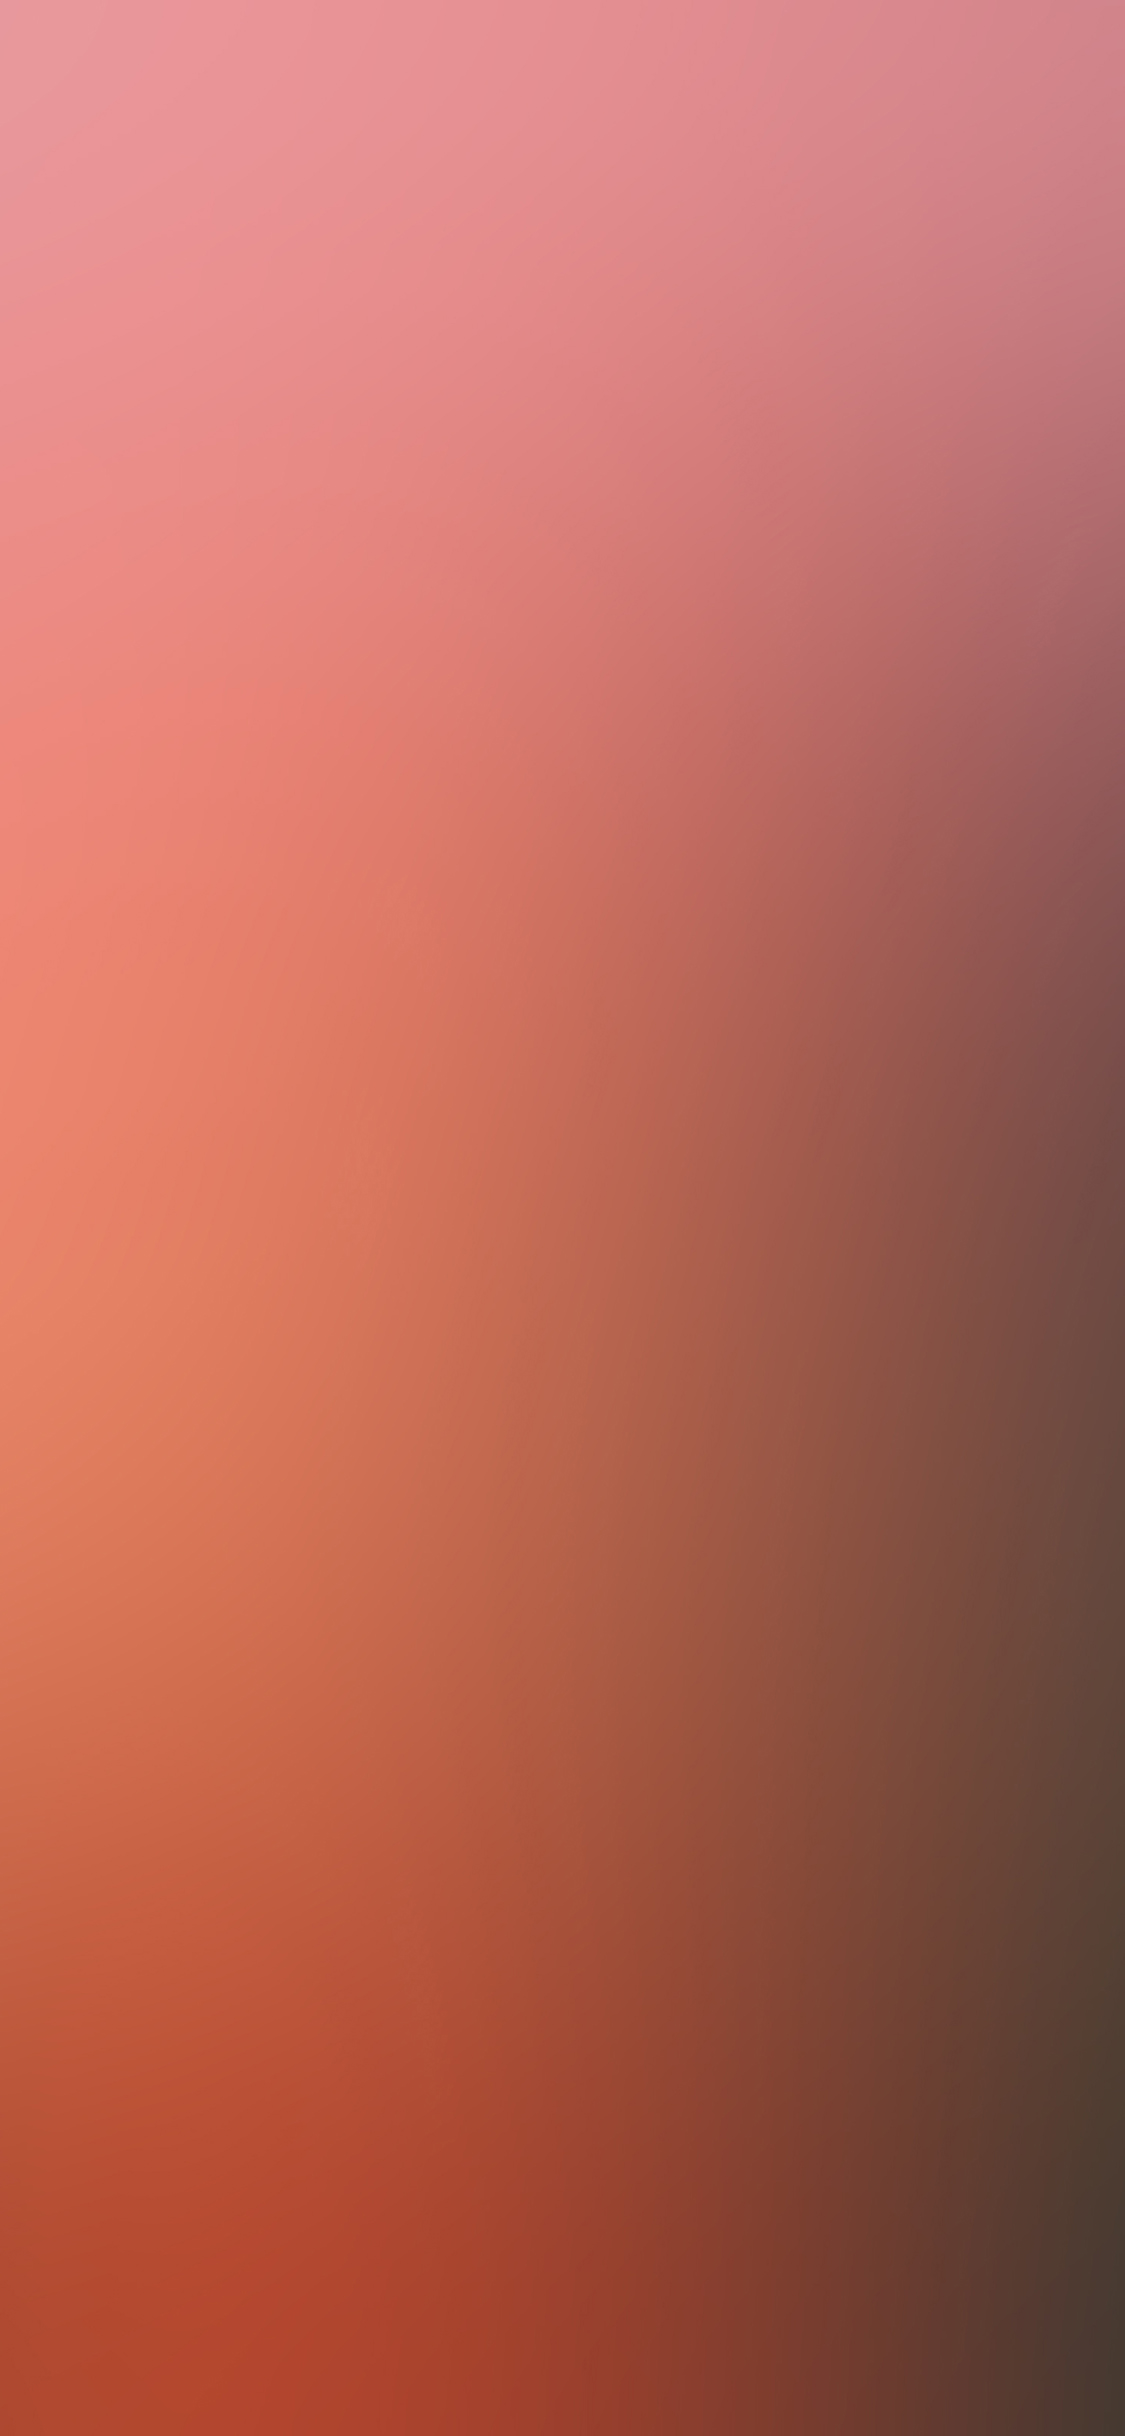 iPhoneXpapers.com-Apple-iPhone-wallpaper-sa29-salmon-orange-melon-blur